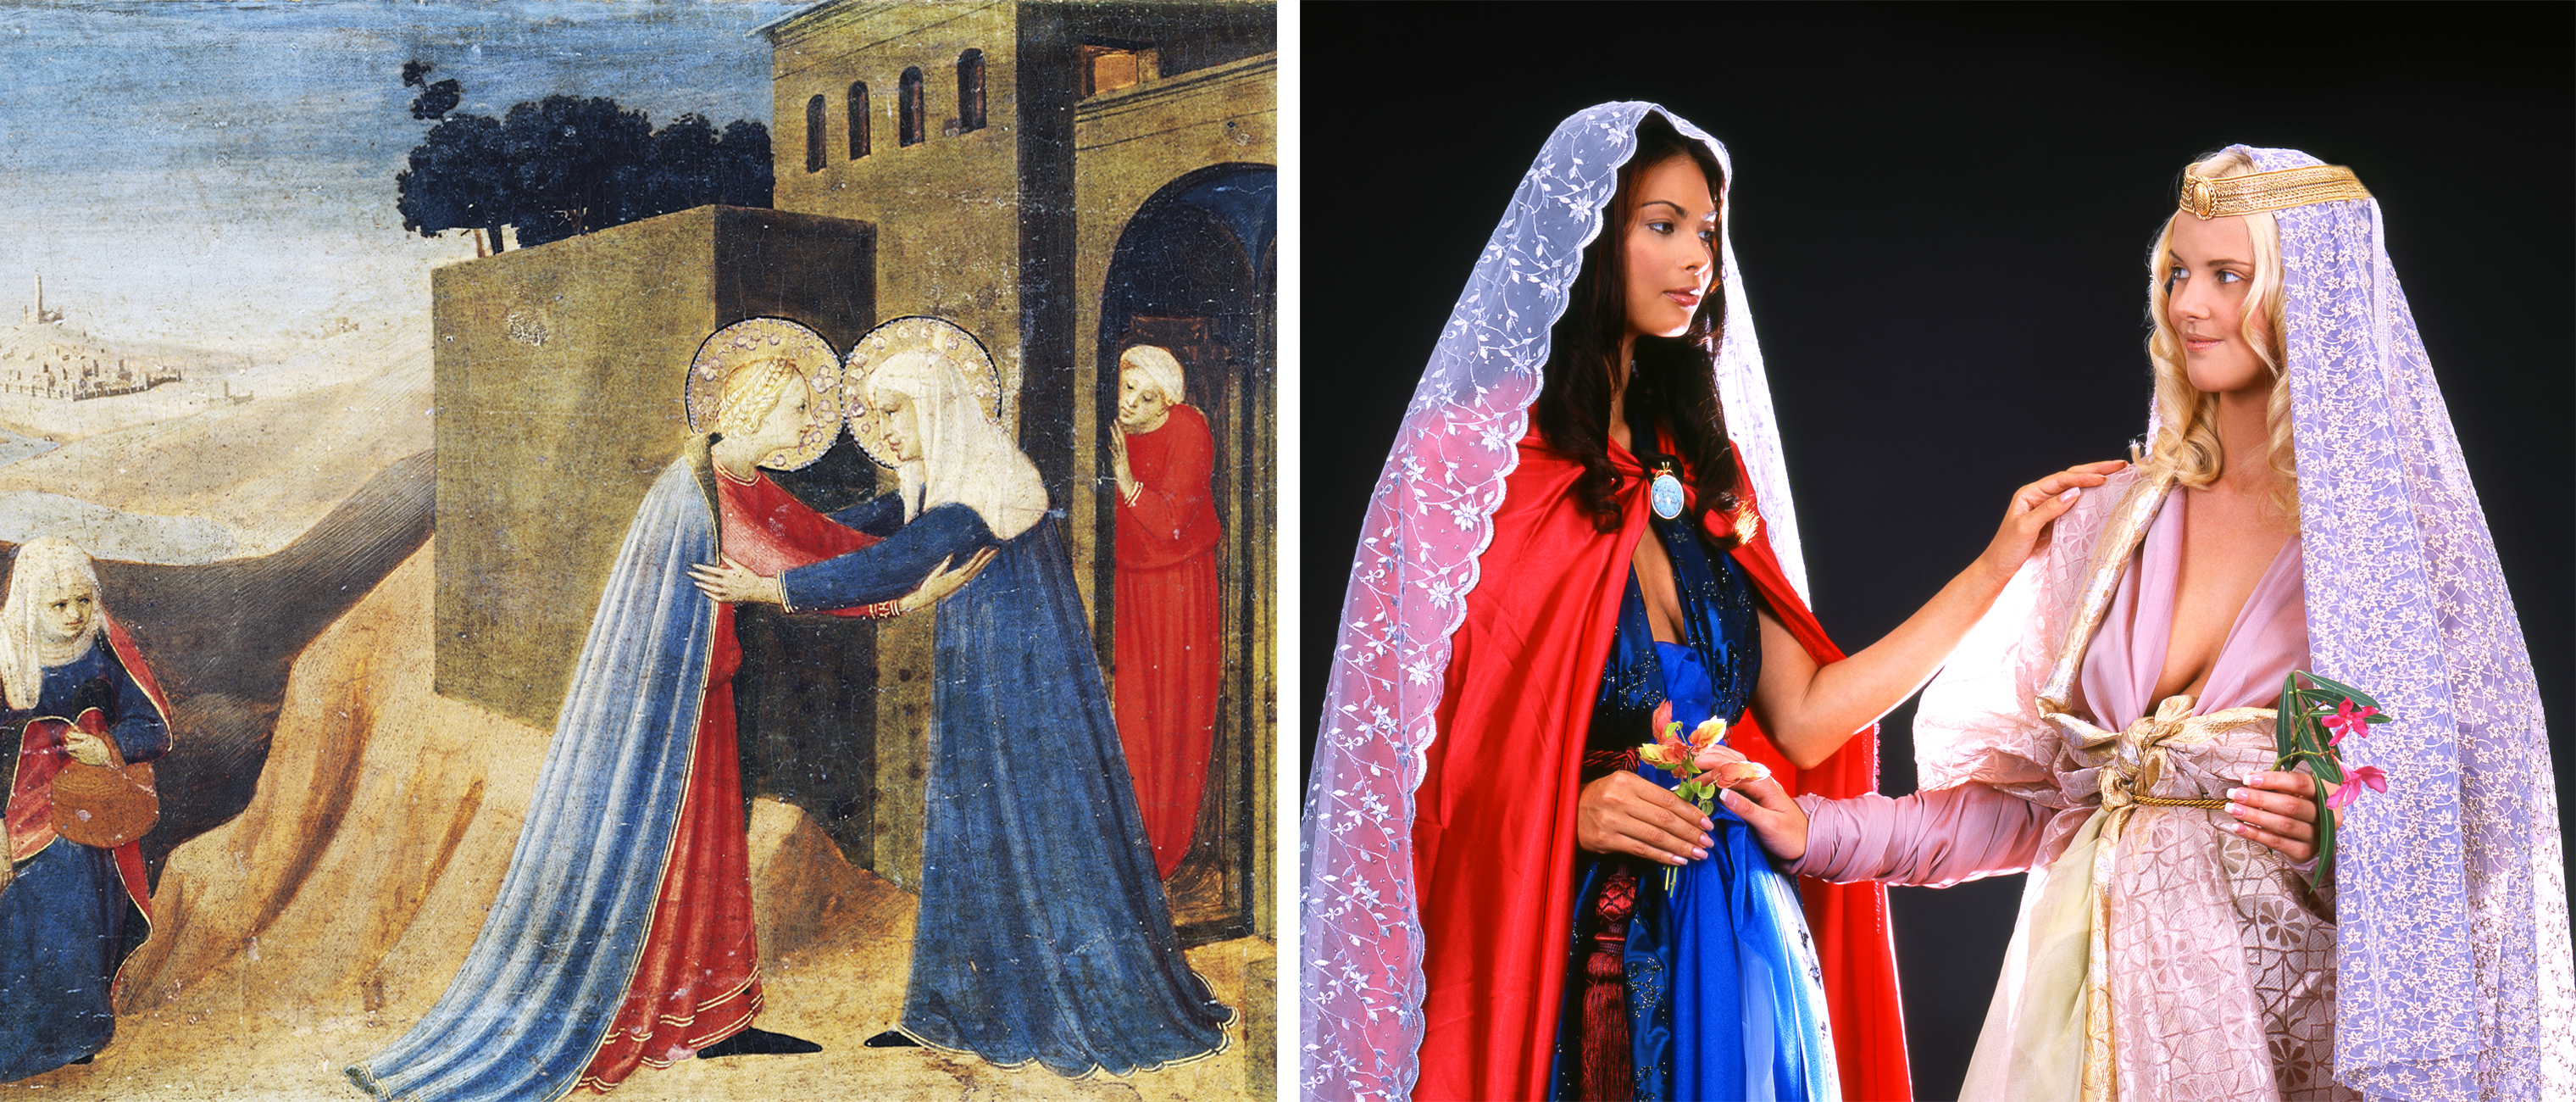 Left: Fra Angelico, The Annunciation of Cortona (detail of Mary's visit to Elizabeth) (Getty Images), 1433-1434; Right: Nika Nesgoda, Ad Visitatio, 2002